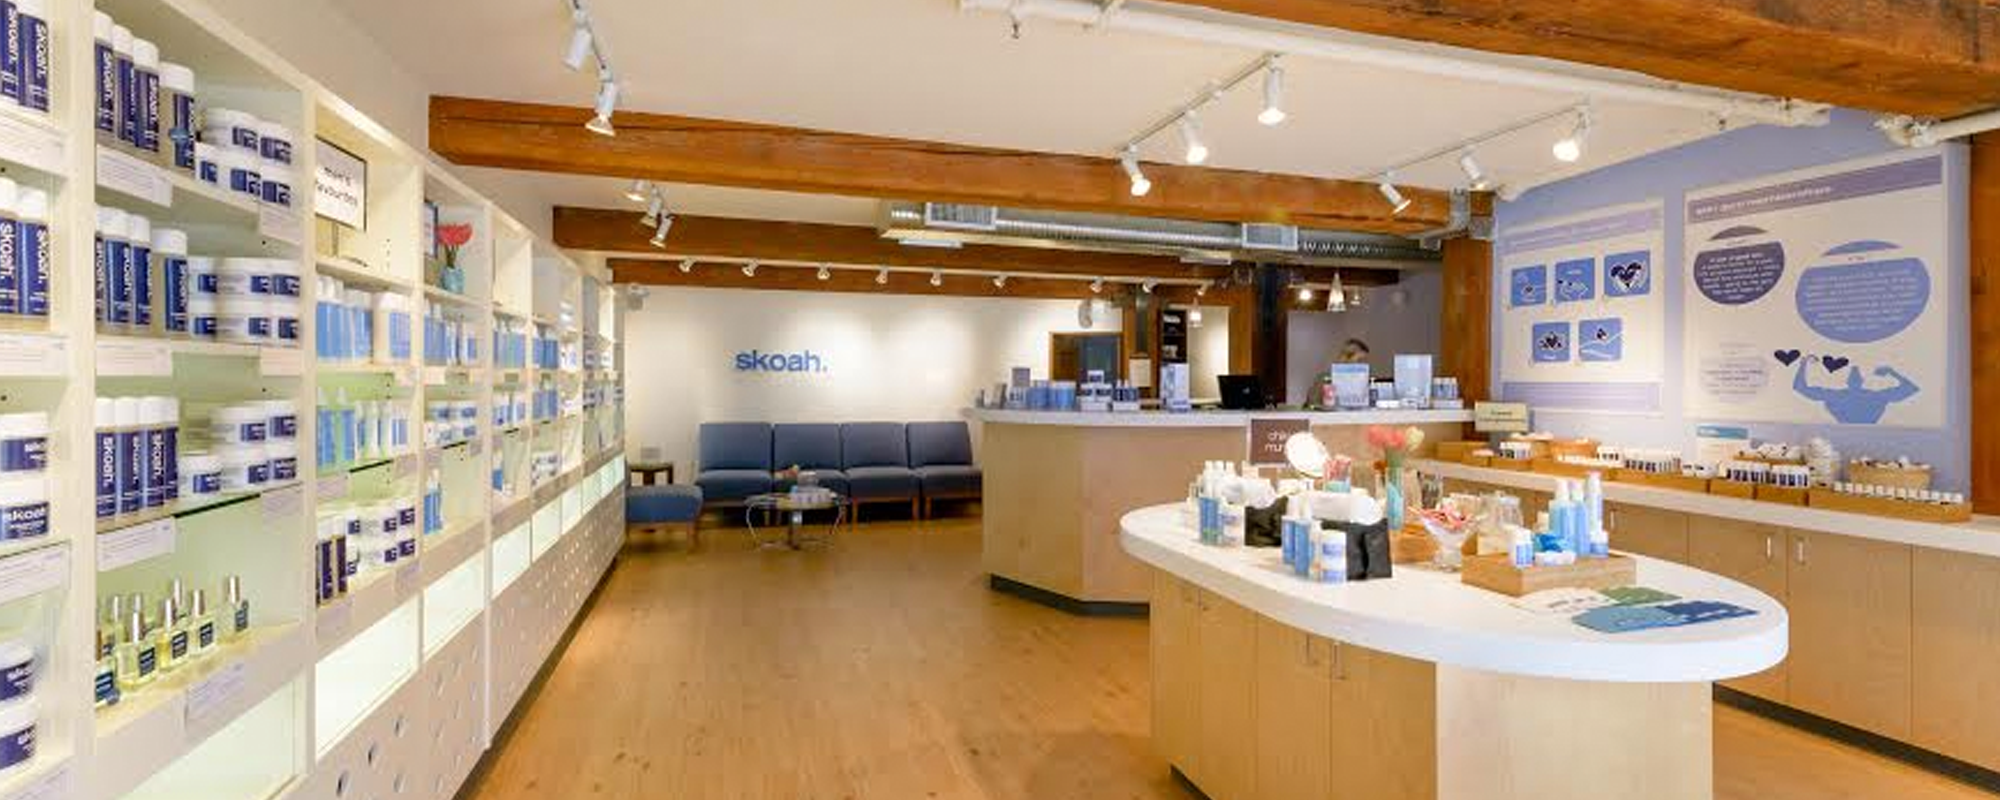 Skoah's spa location in Seattle